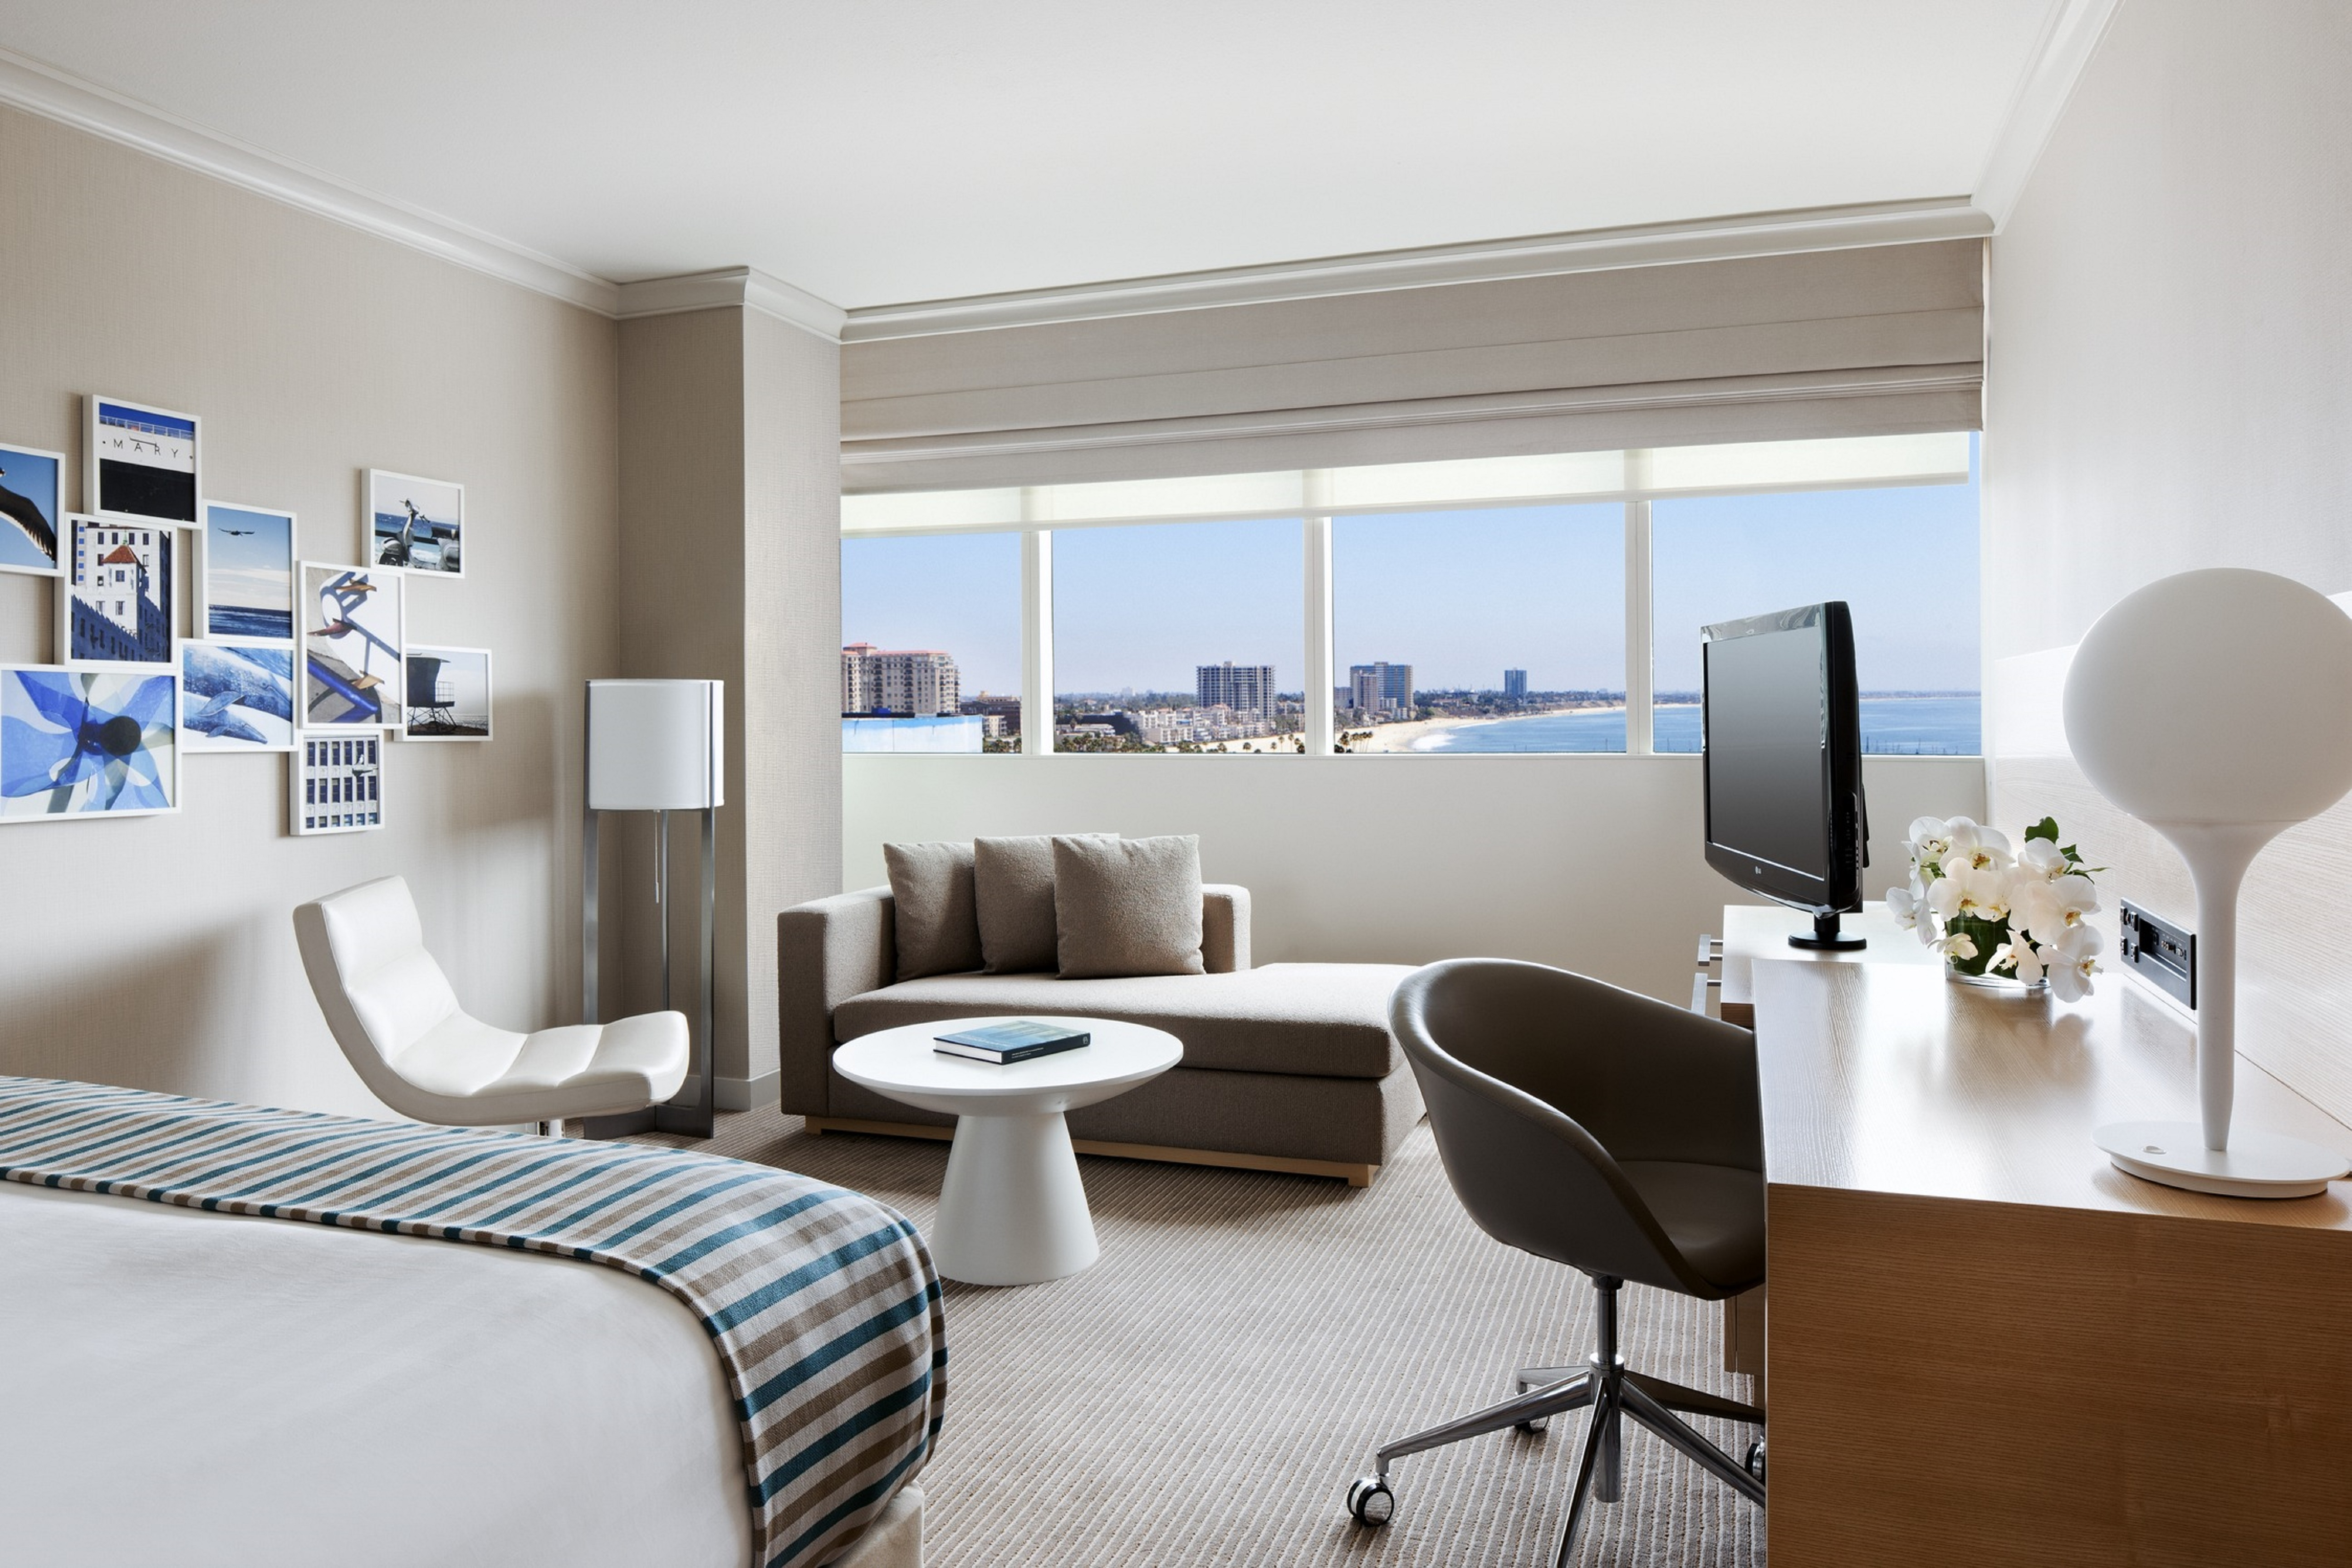 https://www.hotelsbyday.com/_data/default-hotel_image/1/7499/dlxk-king-room.jpg